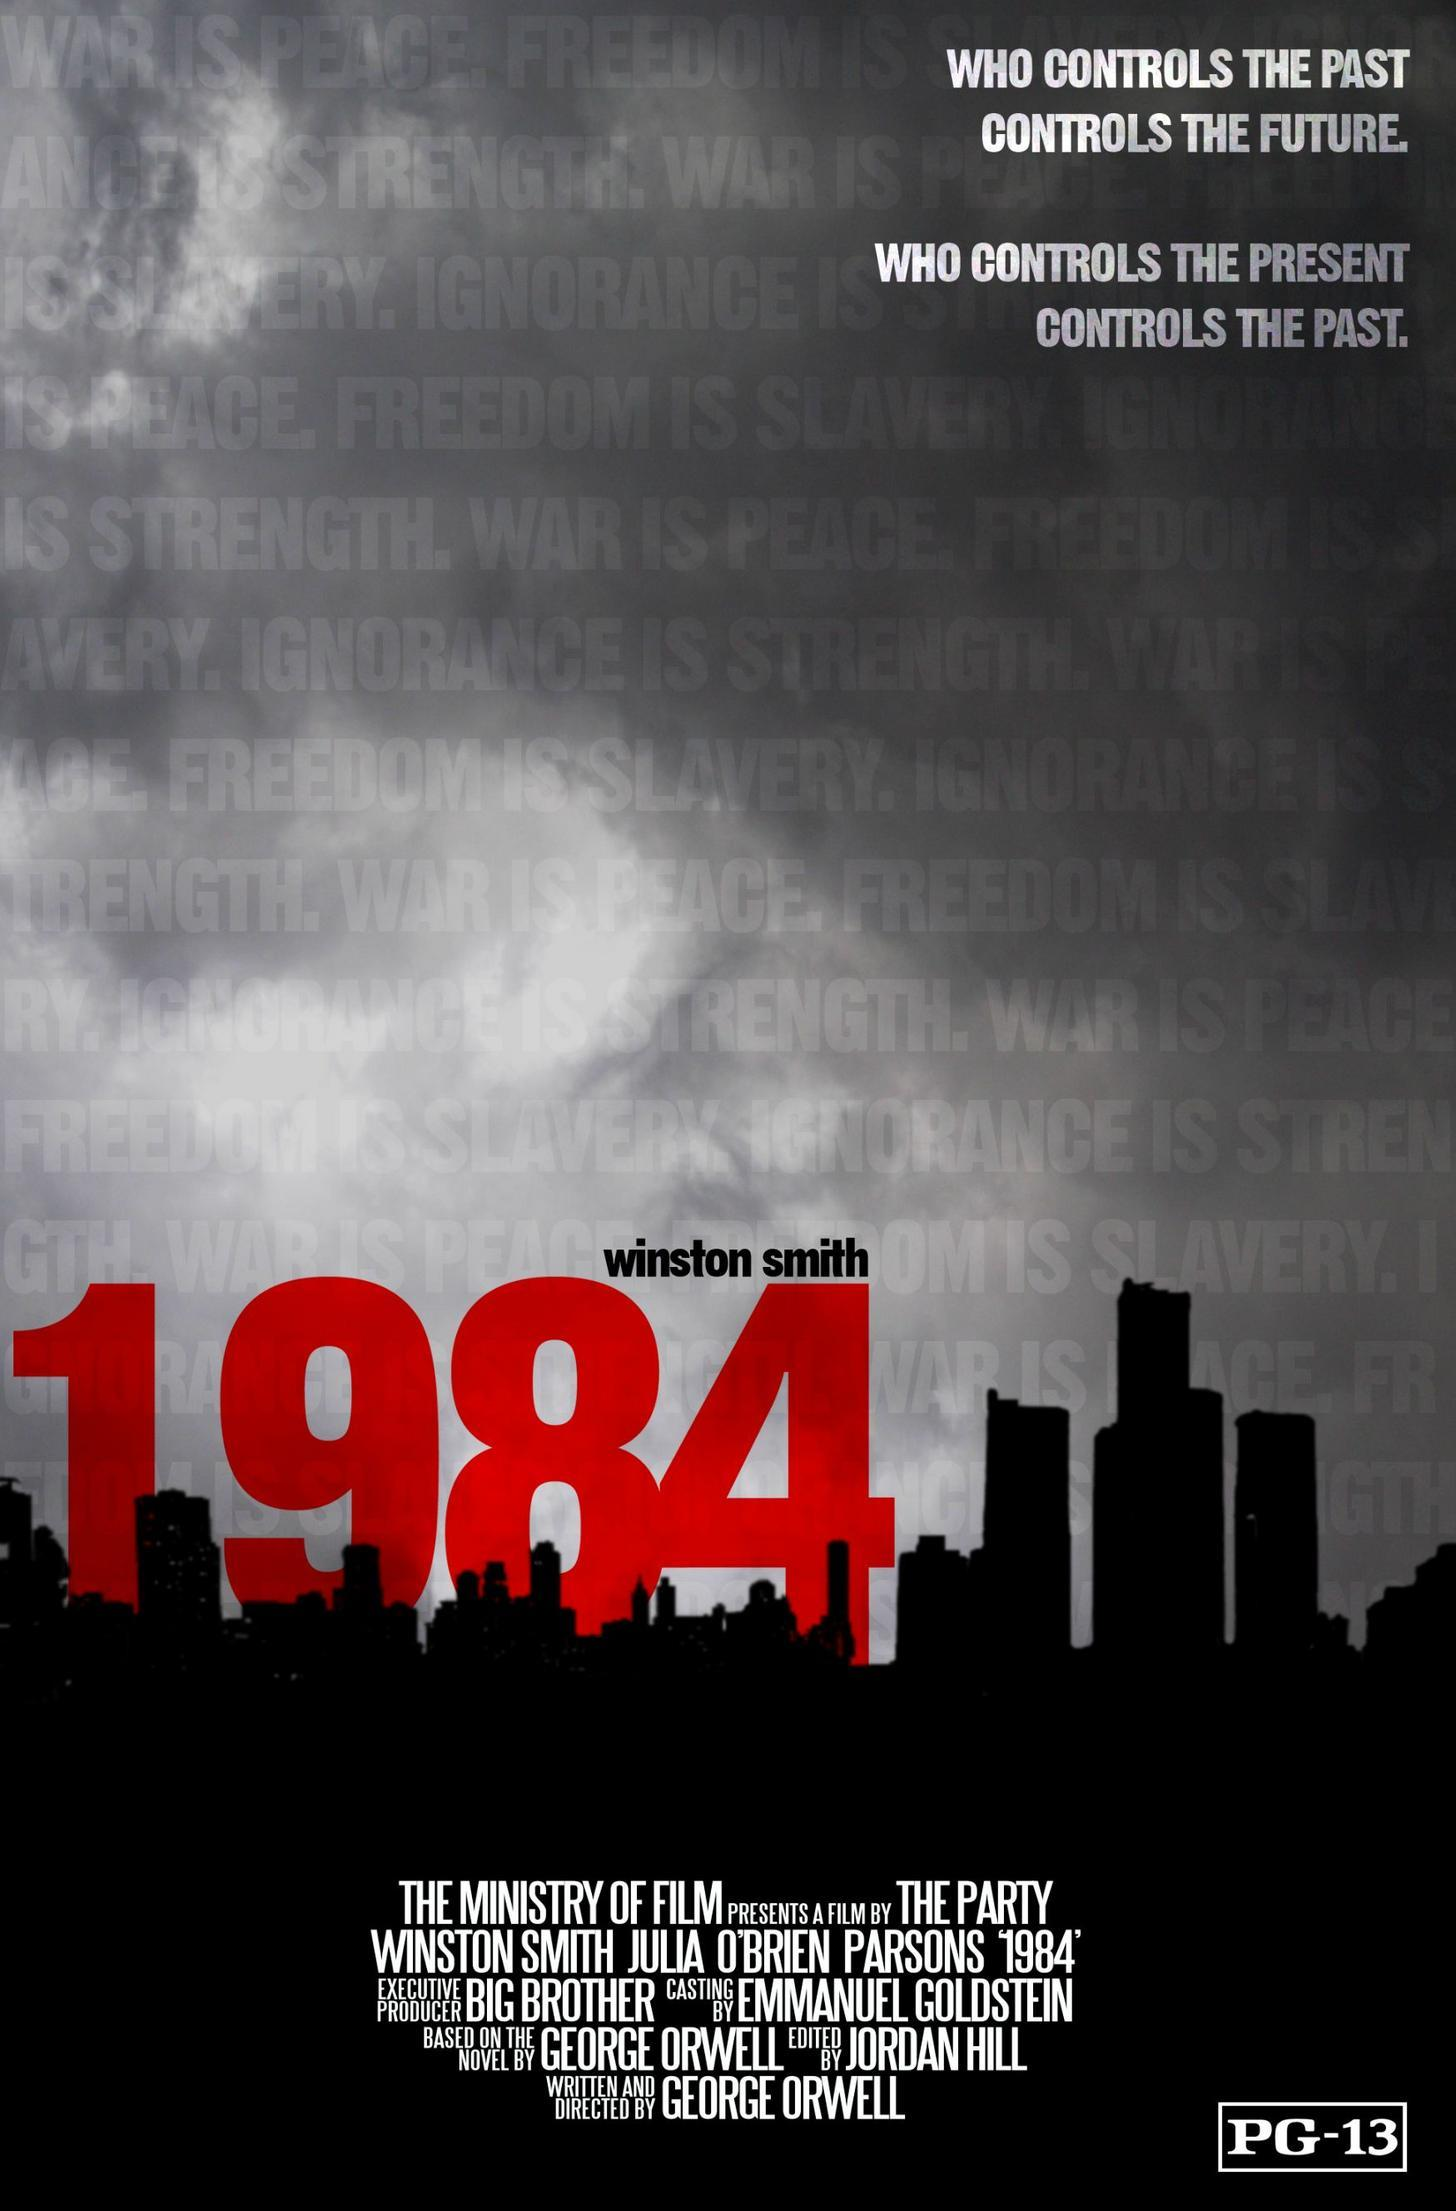 1984 the party controls the past In the book 1984 by george orwell, the party controls the past, present, and future as they alter historical records and effectively brainwash the population a character in this book named julia says, it's the one thing they can't do.